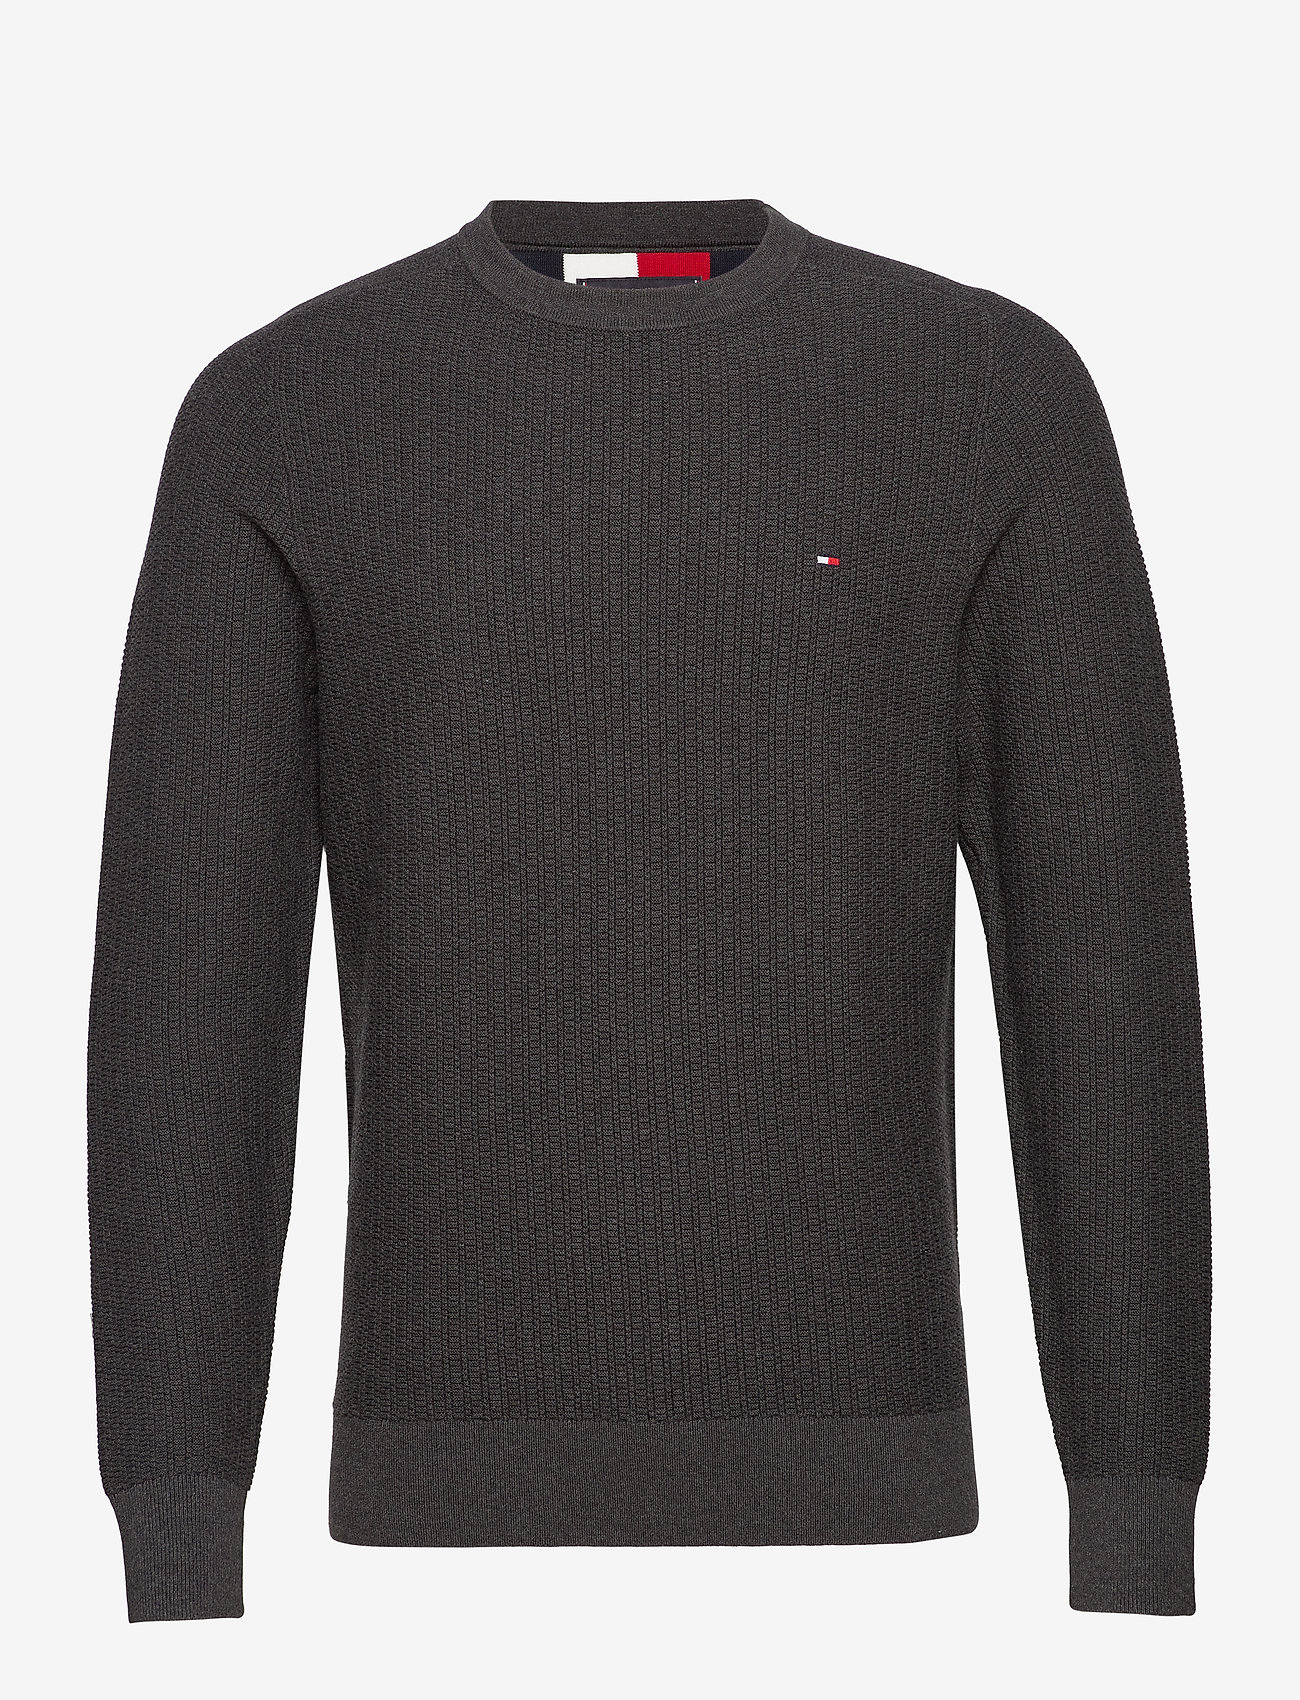 Tommy Hilfiger - BOLD TEXTURED COTTON SWEATER - basic strik - charcoal heather - 0